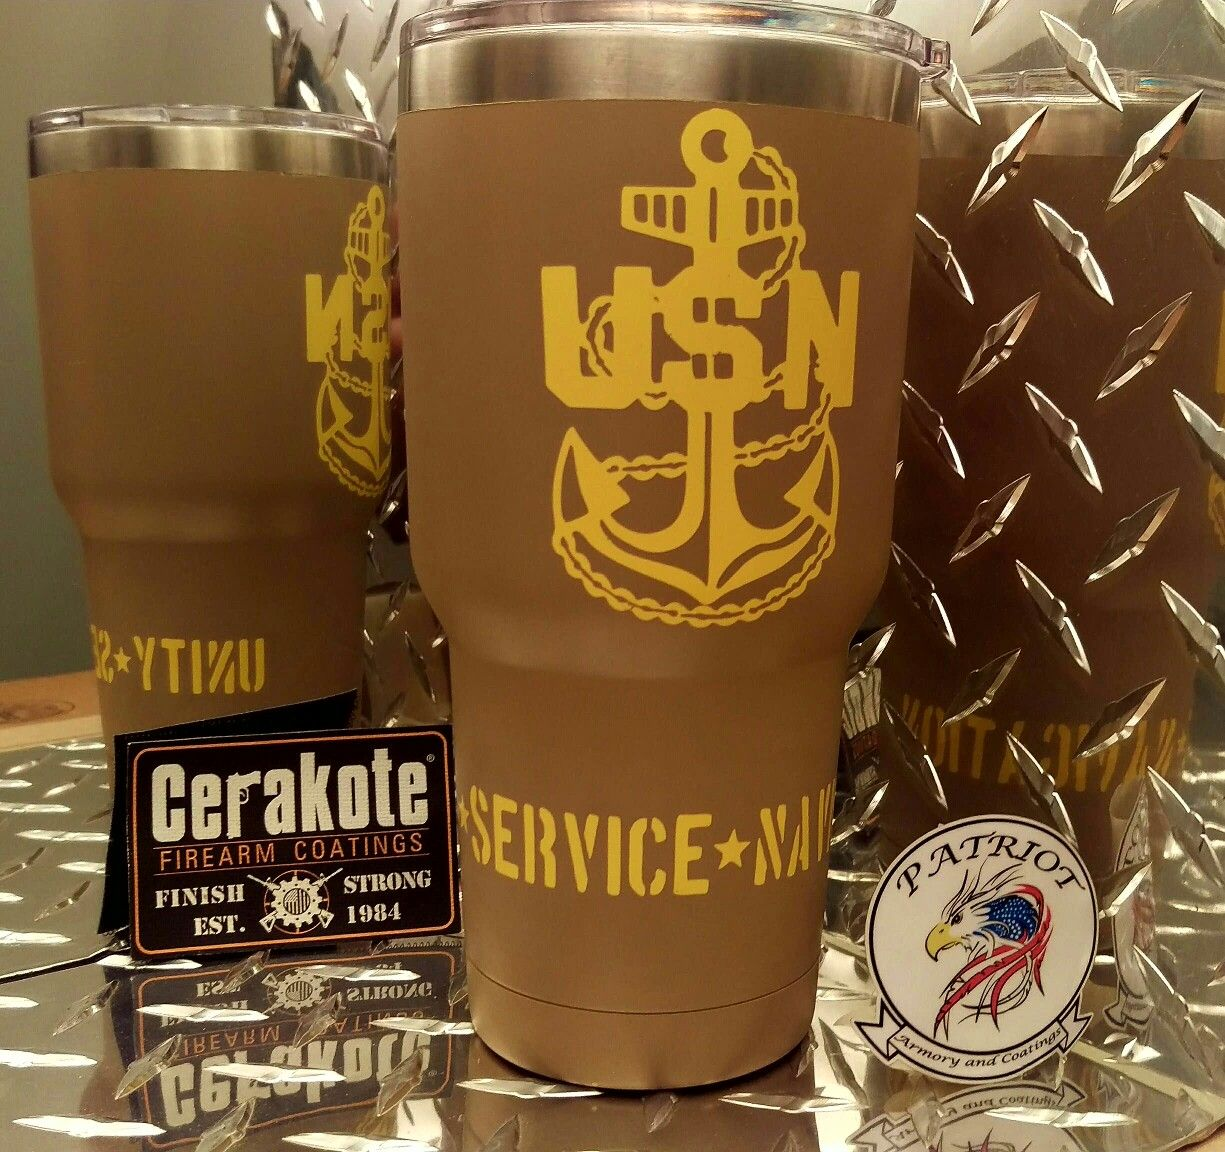 We can Cerakote your  tumbler with just about any design.  Makes A GREAT GIFT!